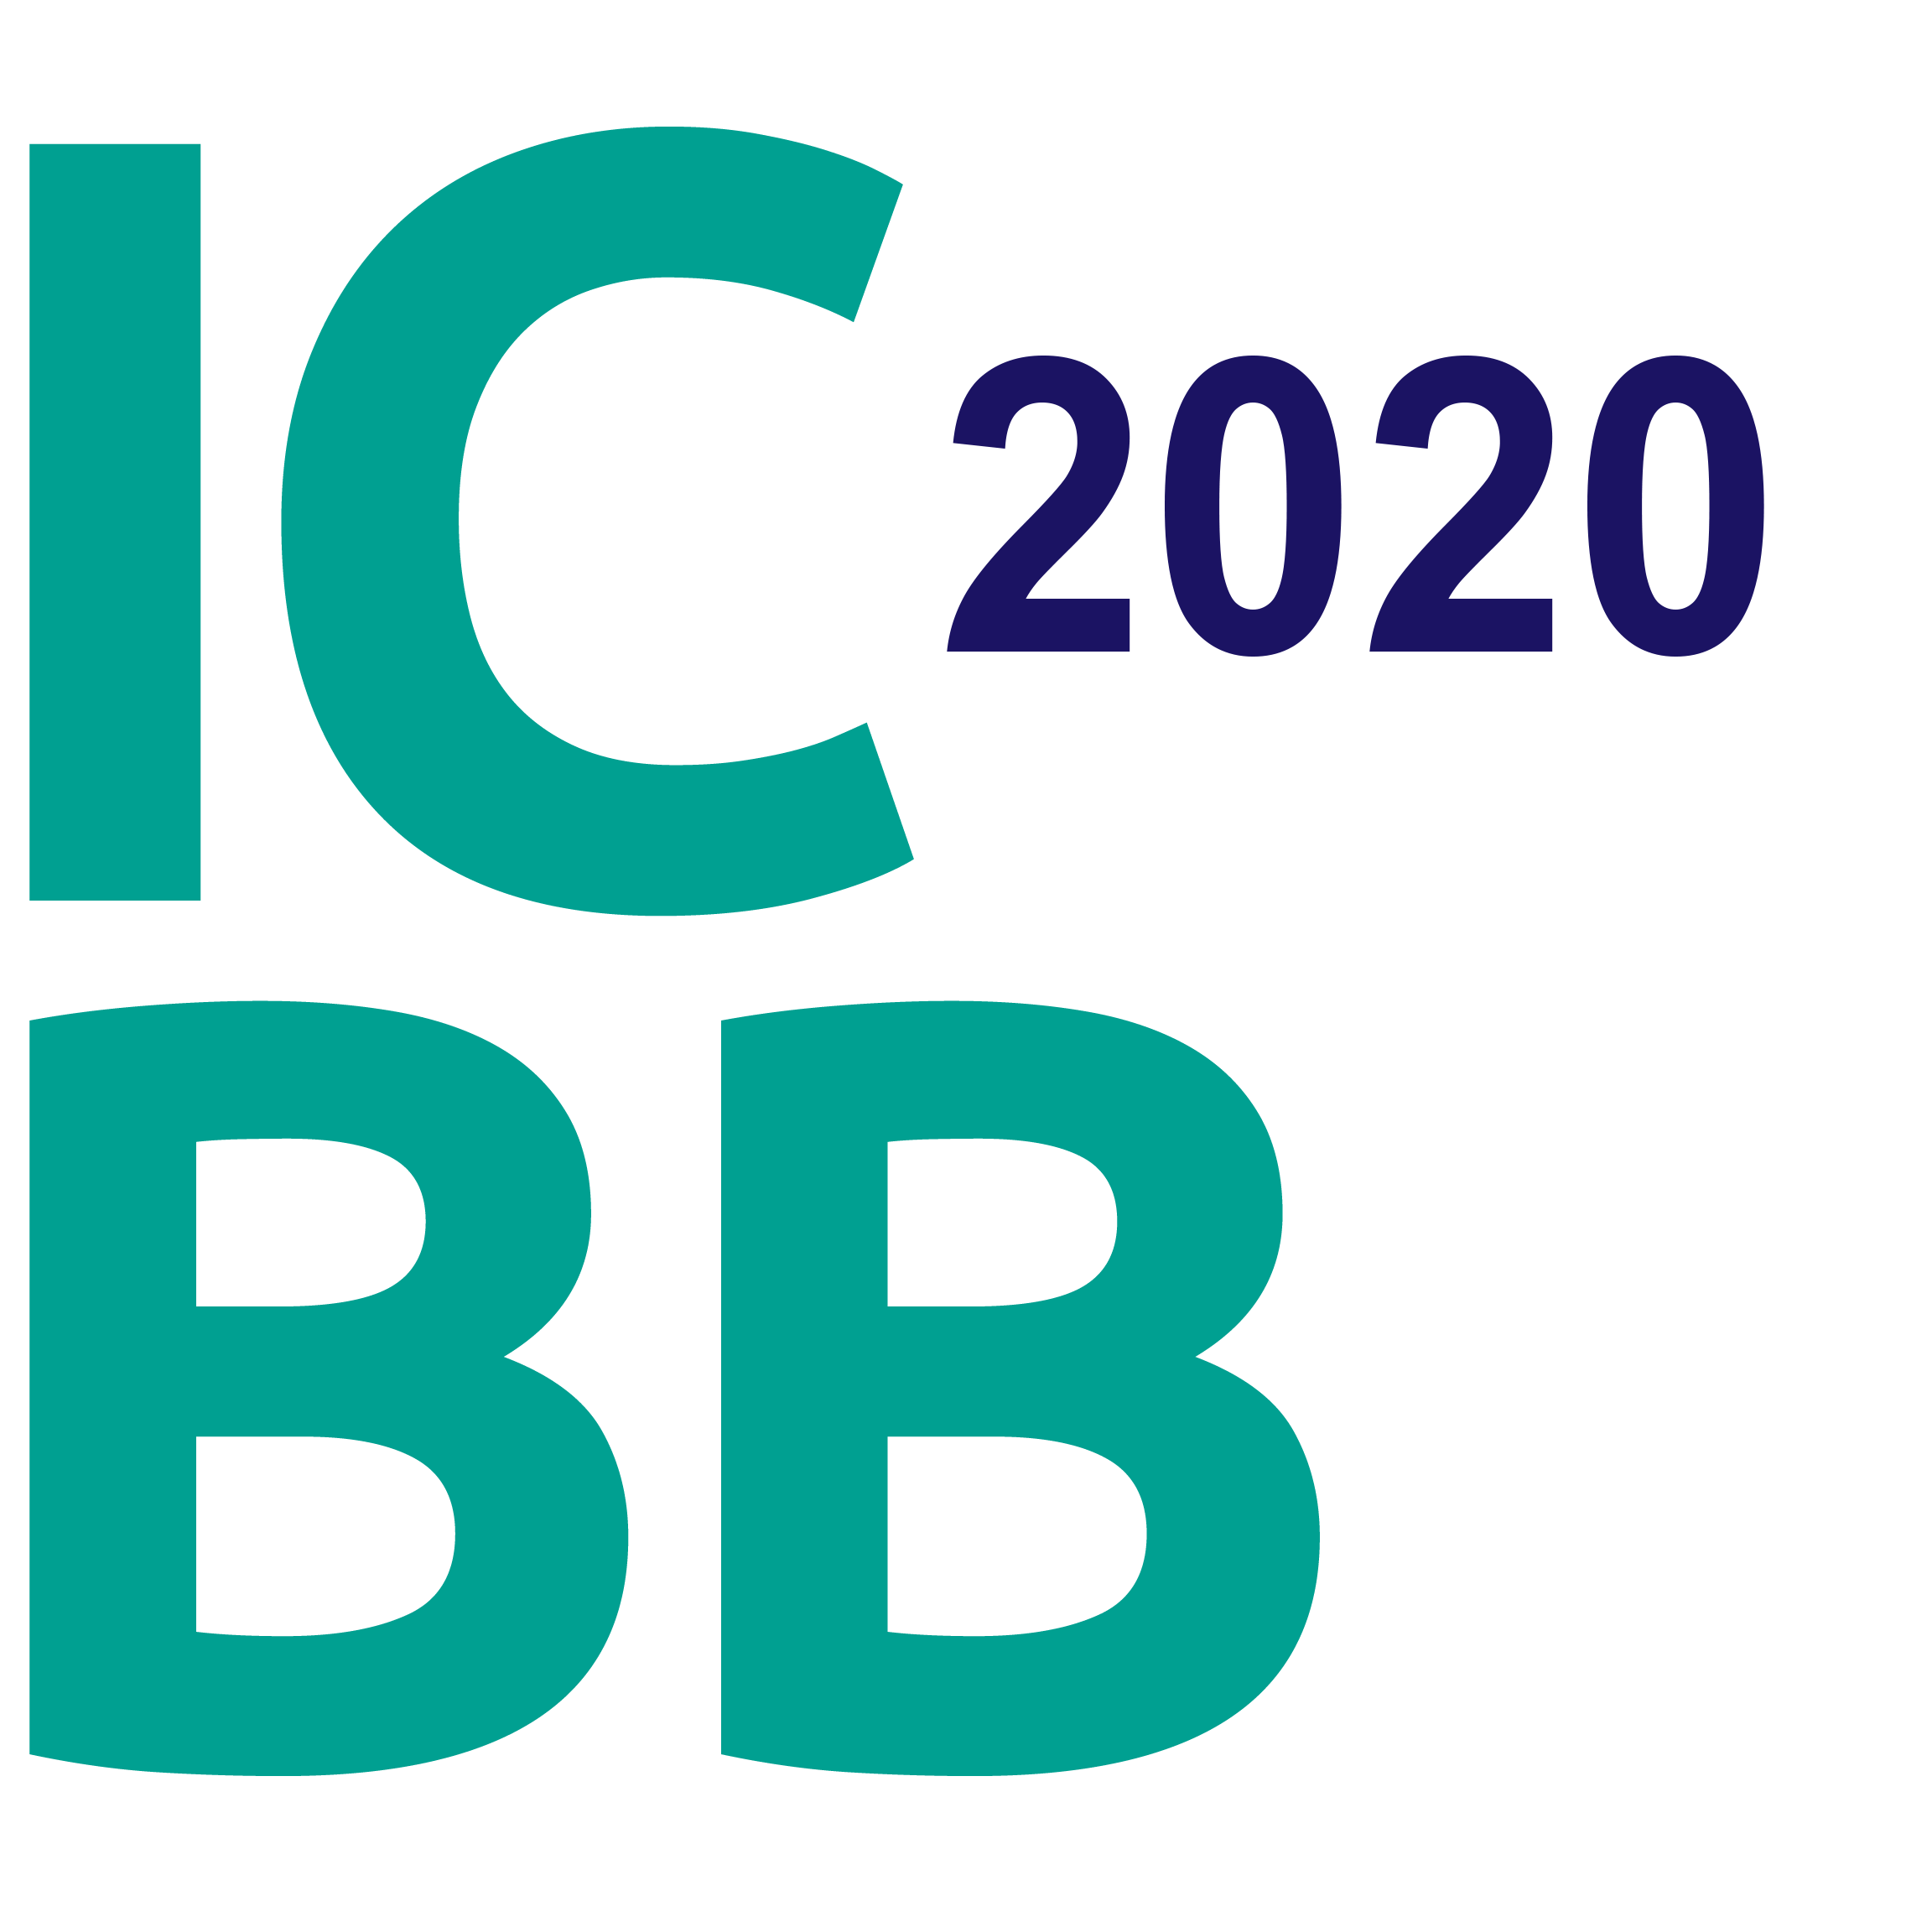 6th International Conference on Bioengineering and Biotechnology (ICBB'20)